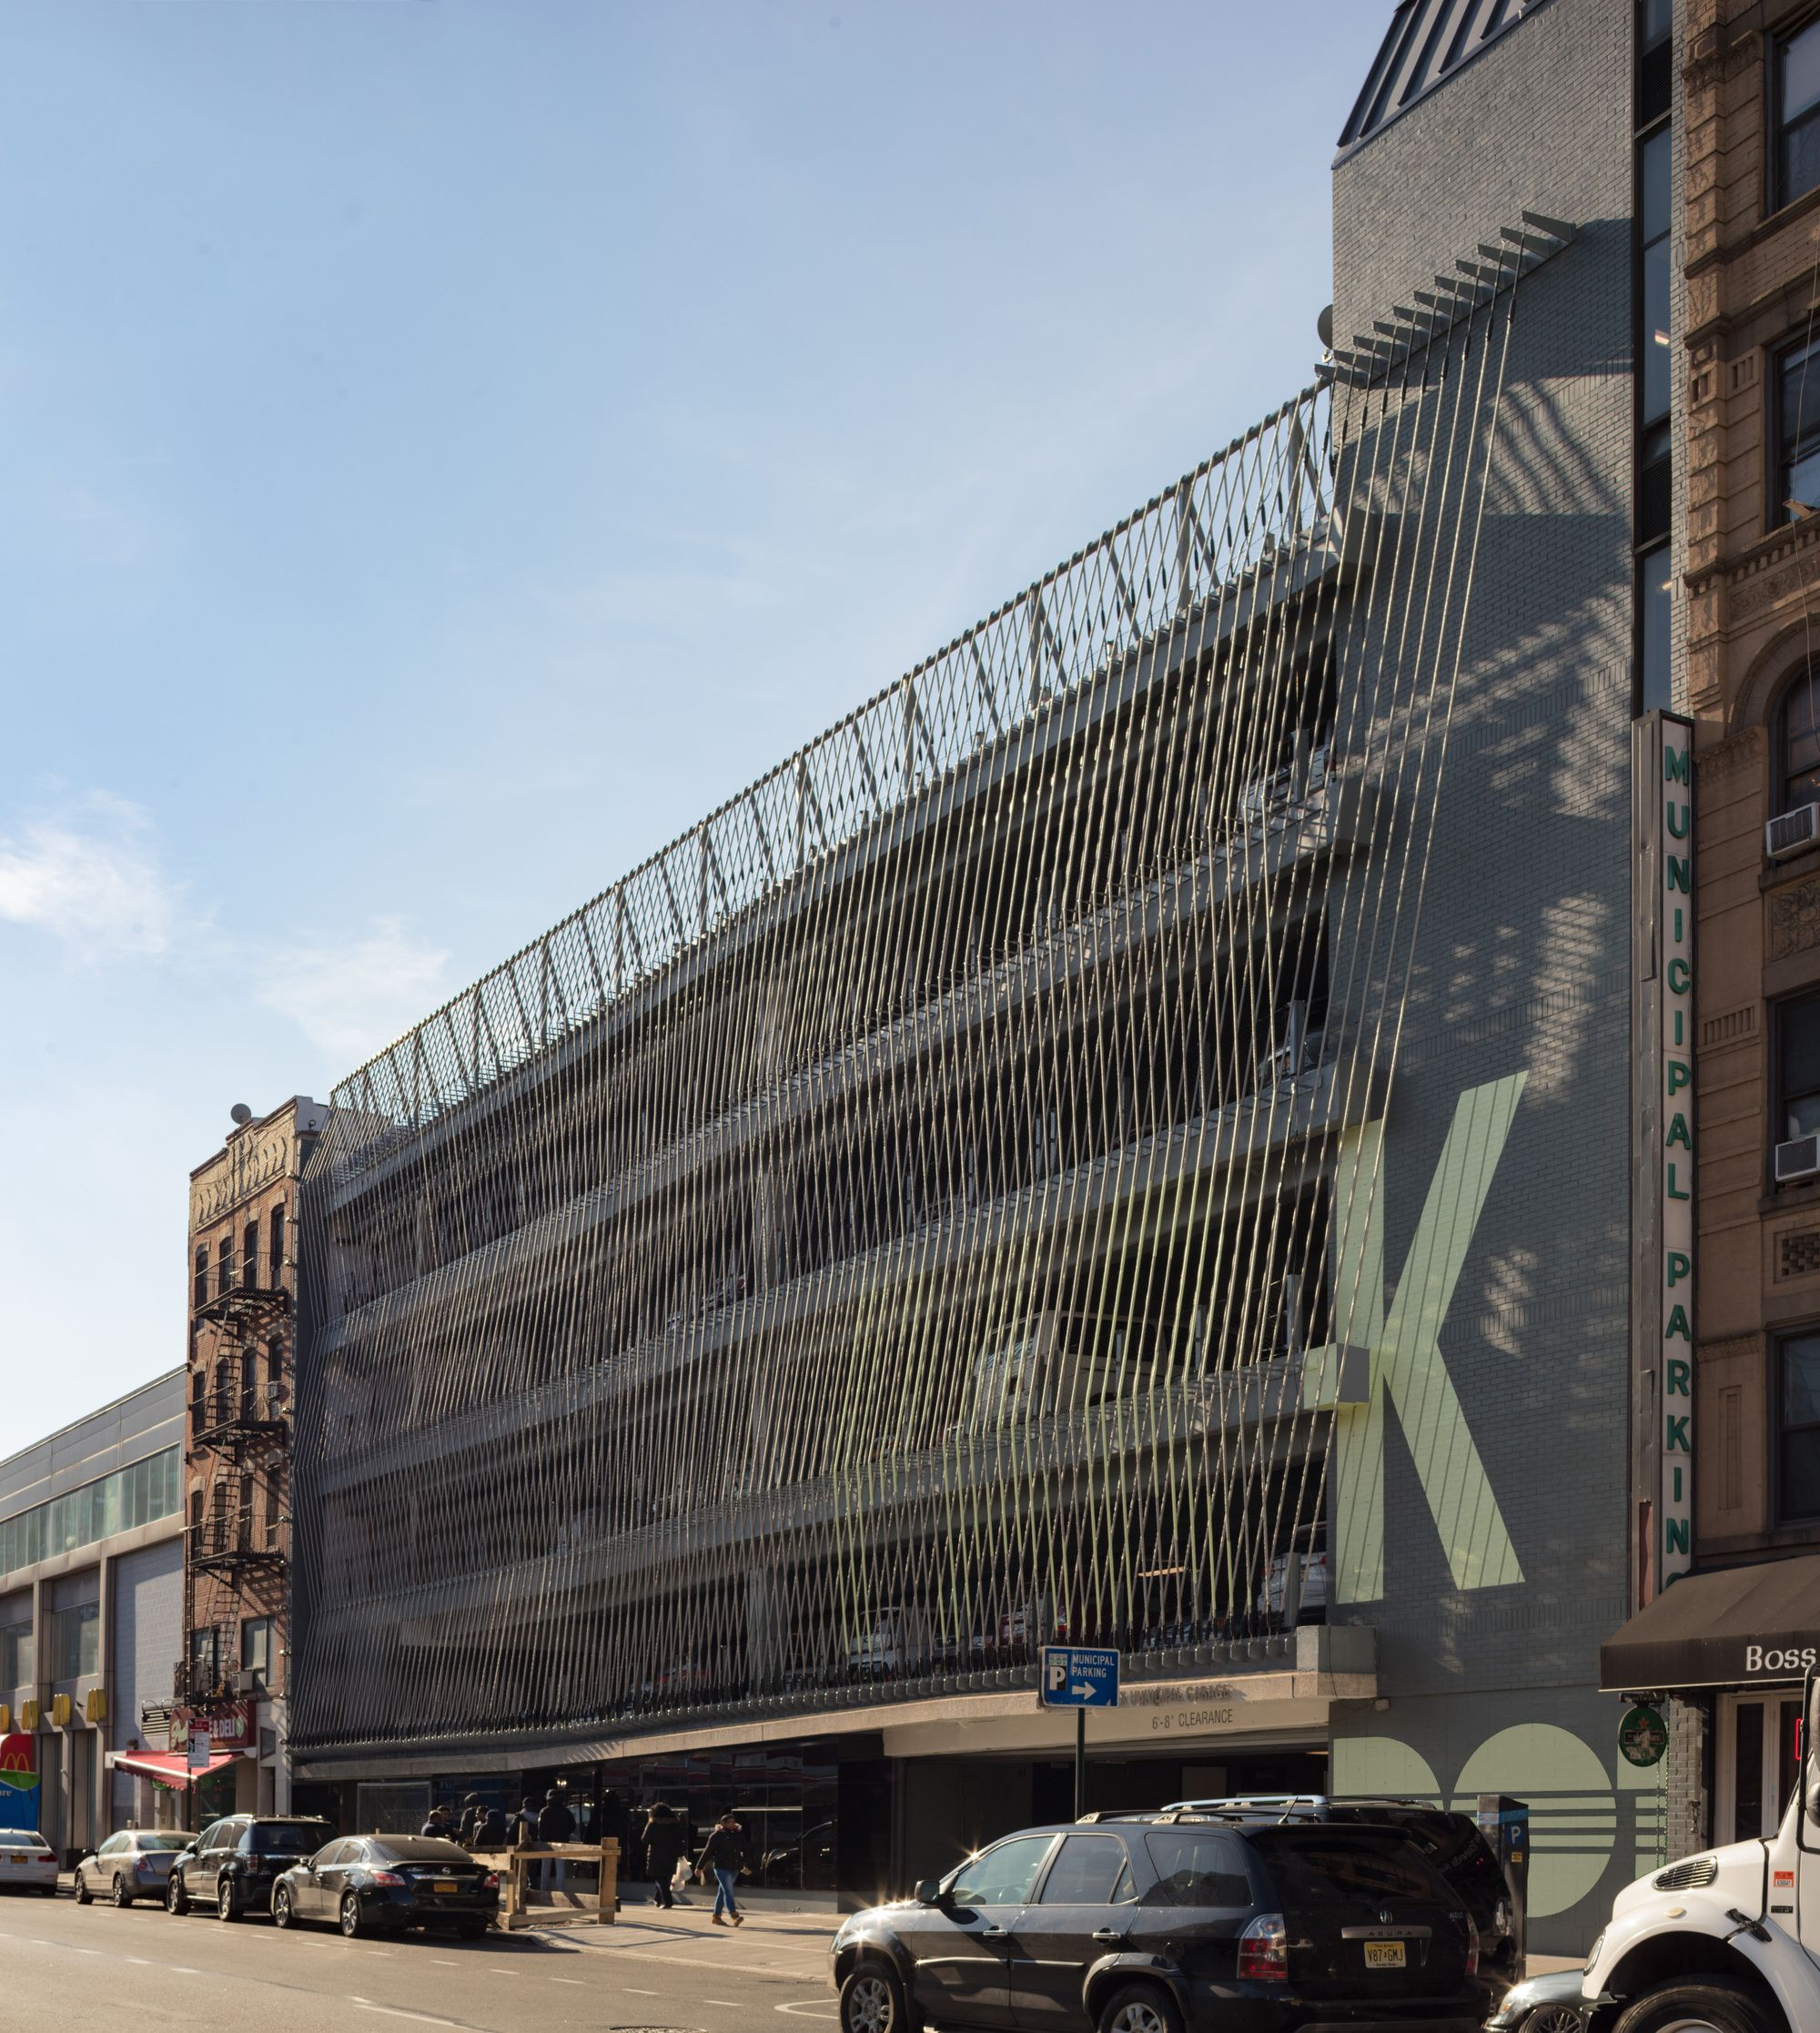 Garage Design Architecture: Gallery Of Delancey And Essex Parking Garage / Michielli